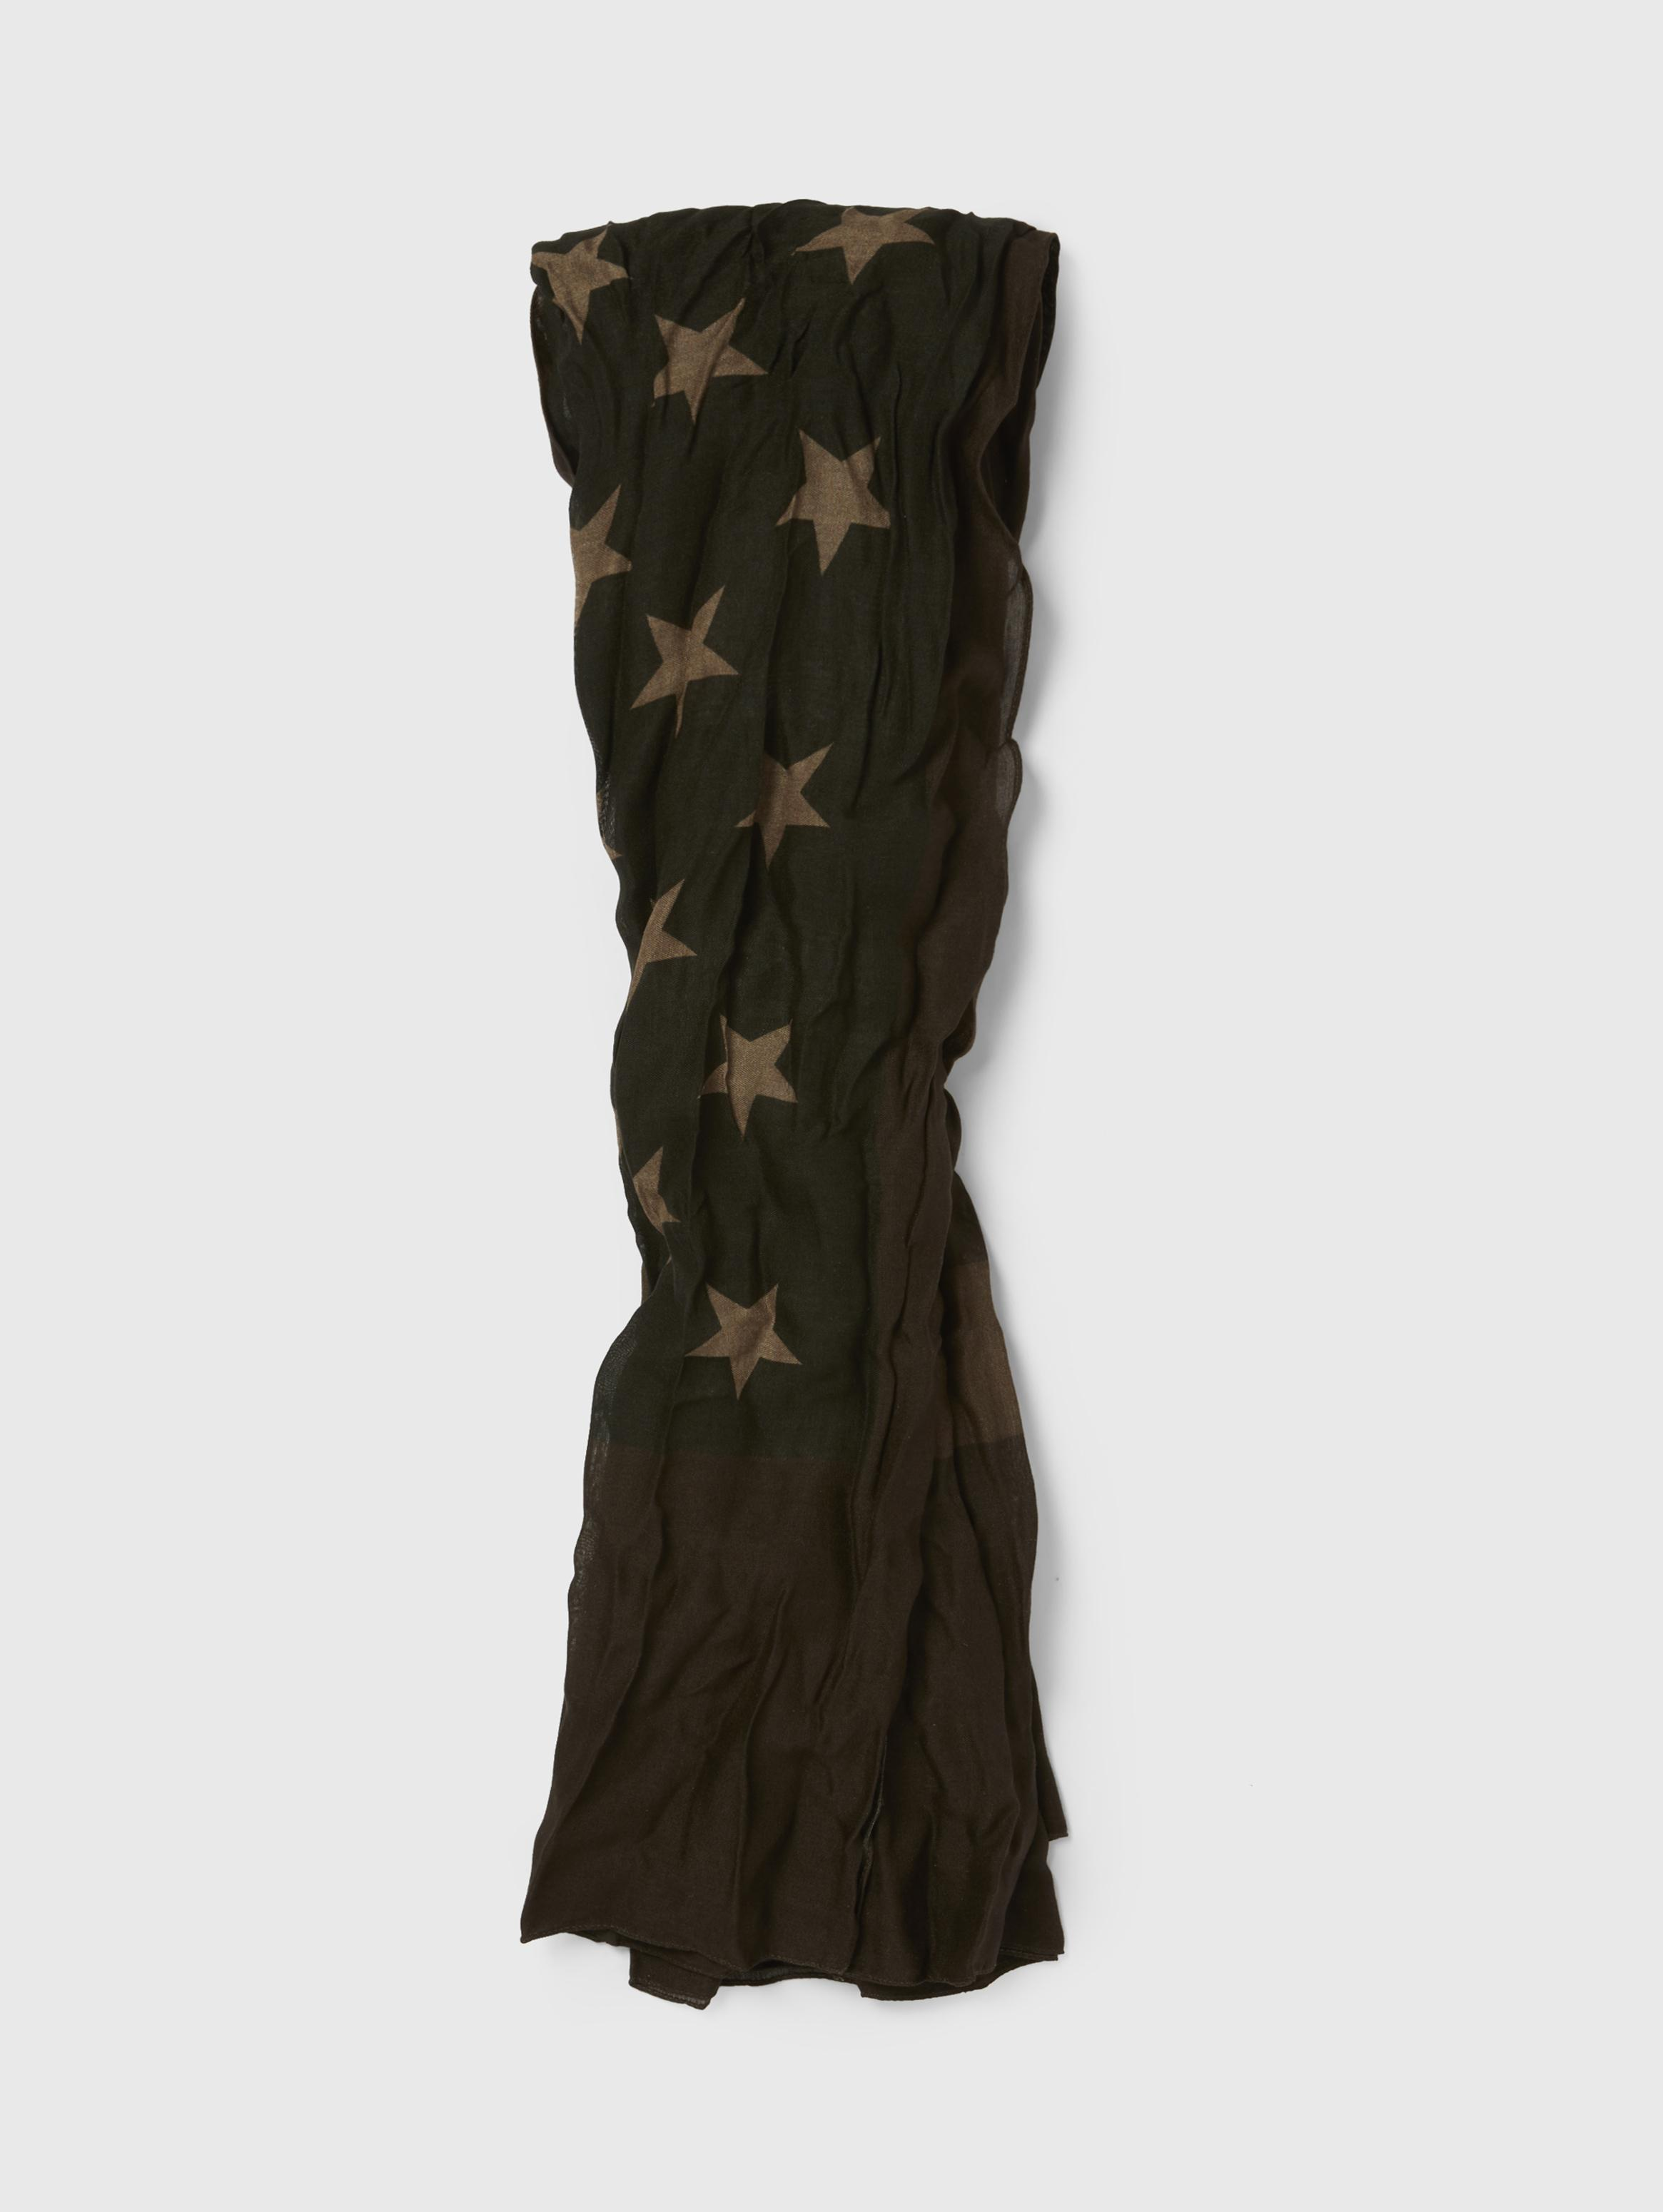 Antique Printed Flag Scarf